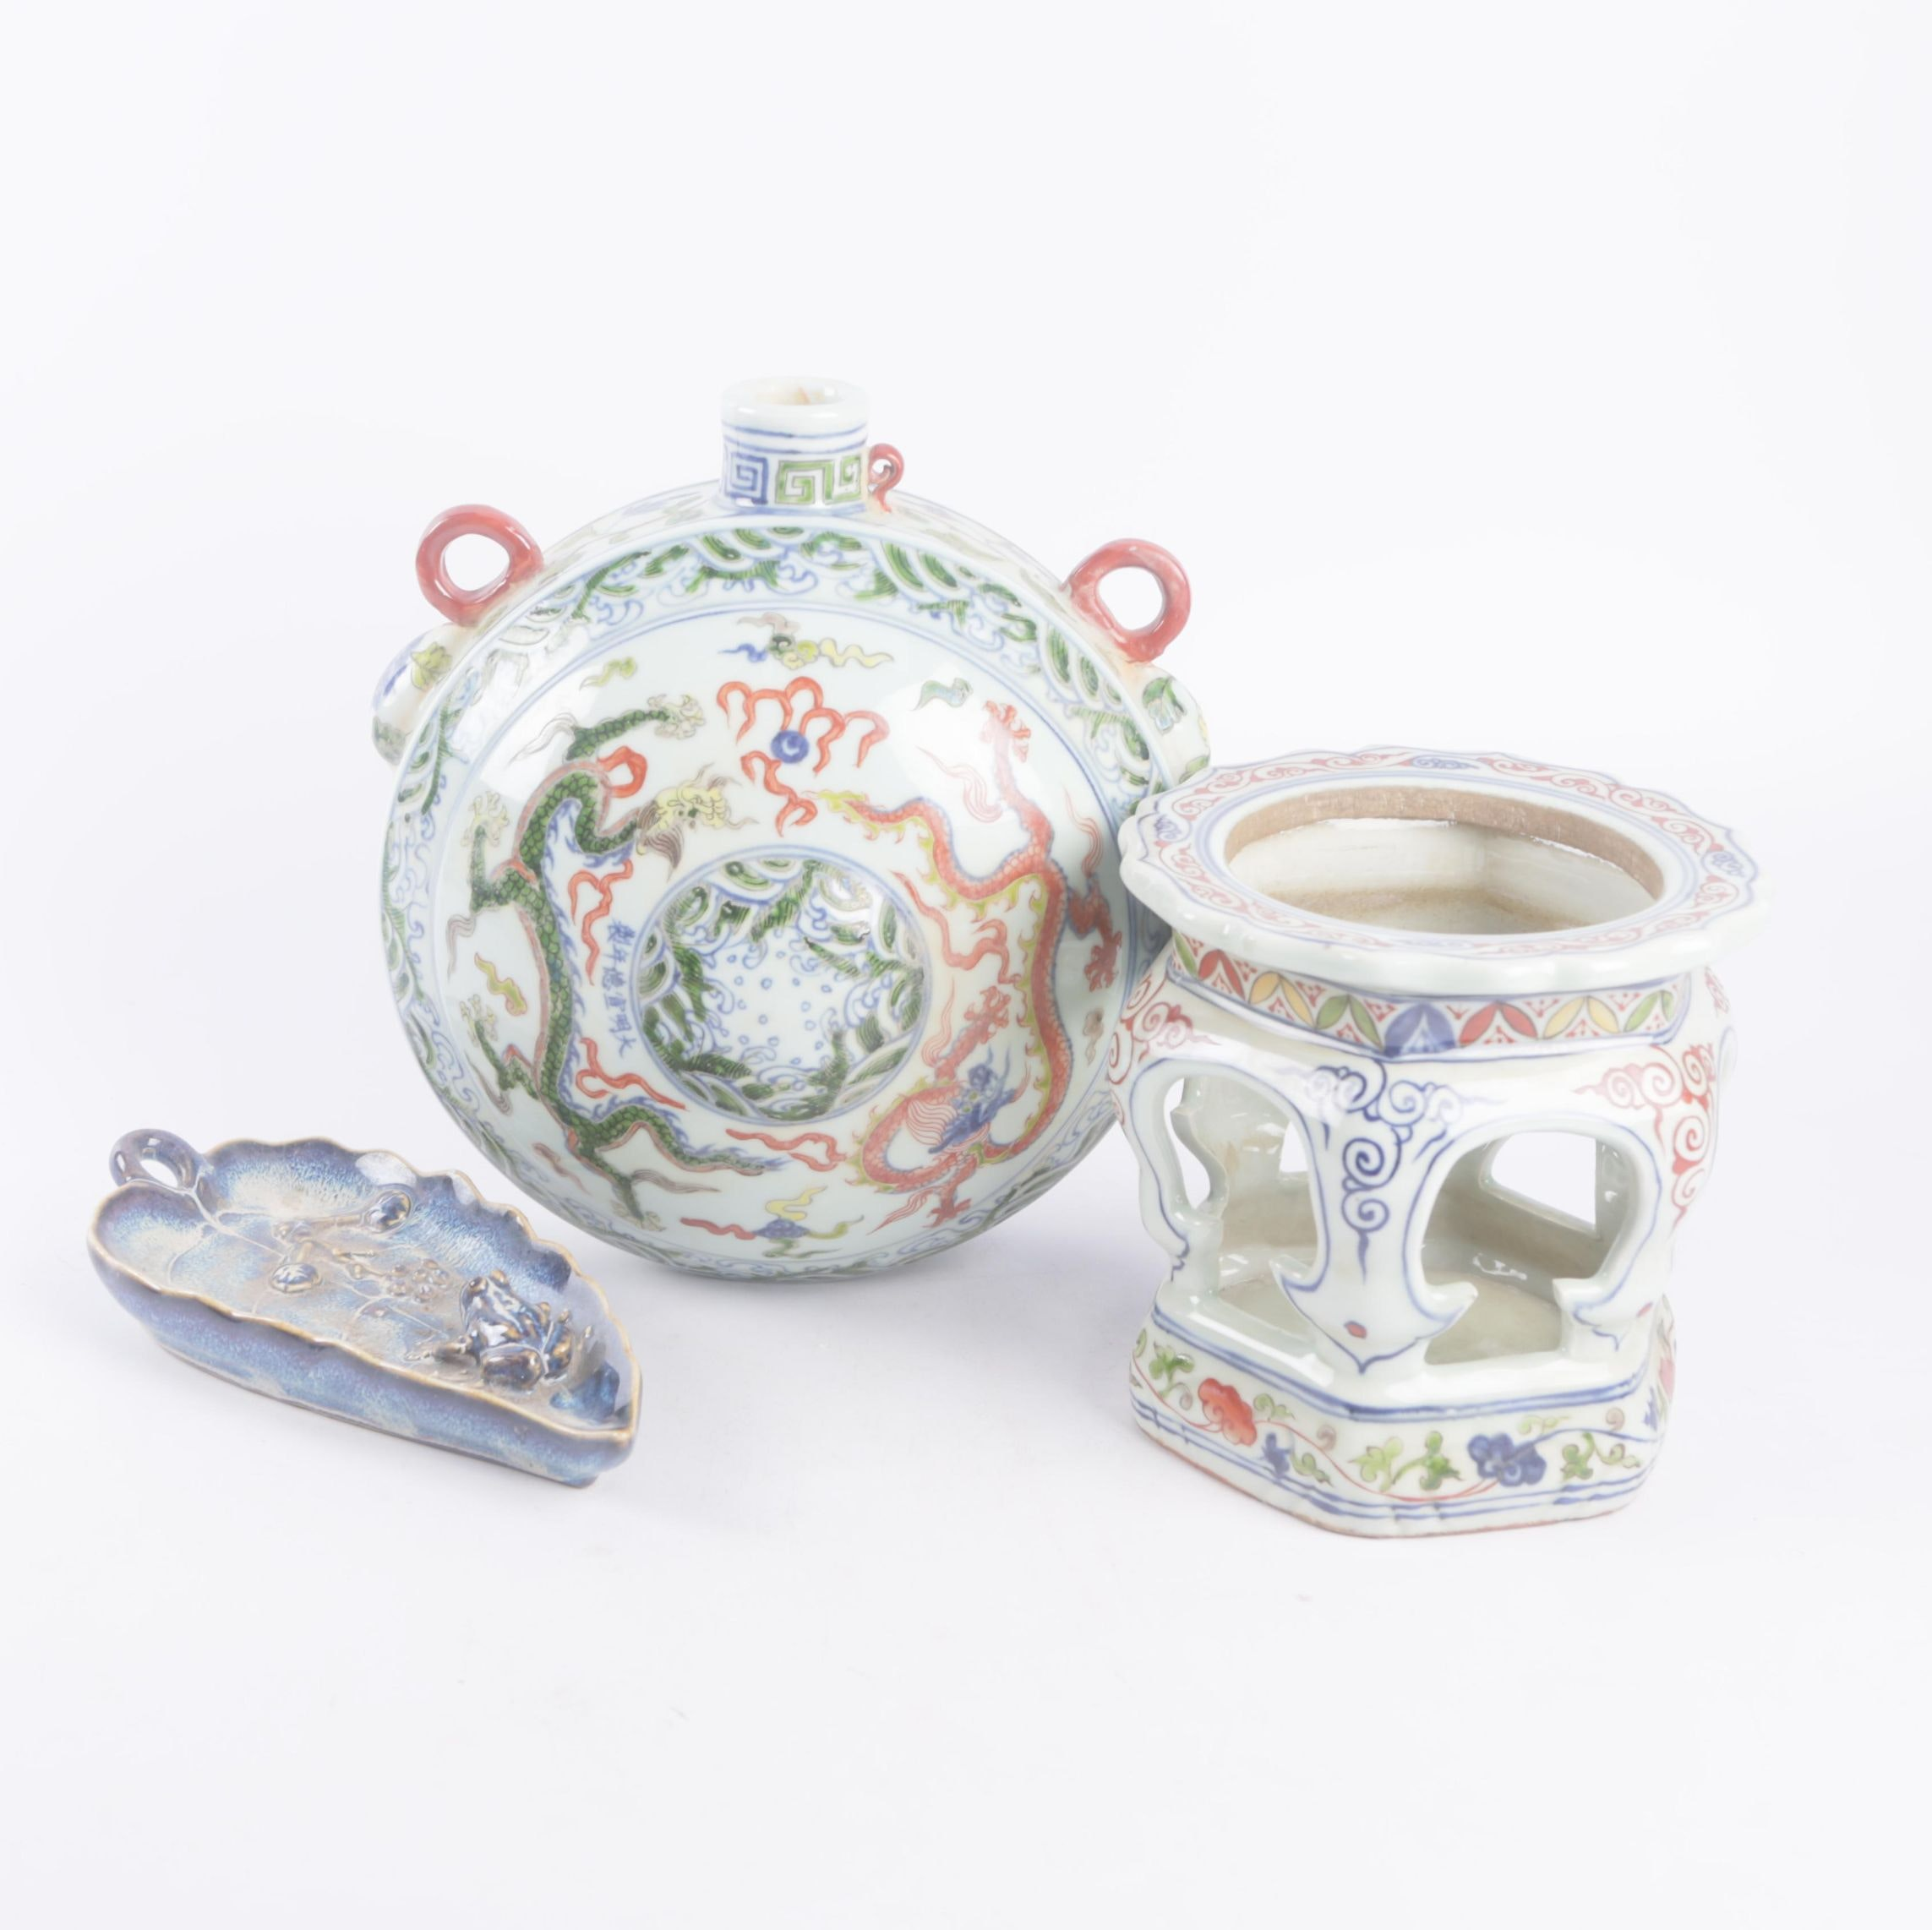 Chinese Hand-Built Ceramic Trinket Tray with Flask Shape Vase and Lantern